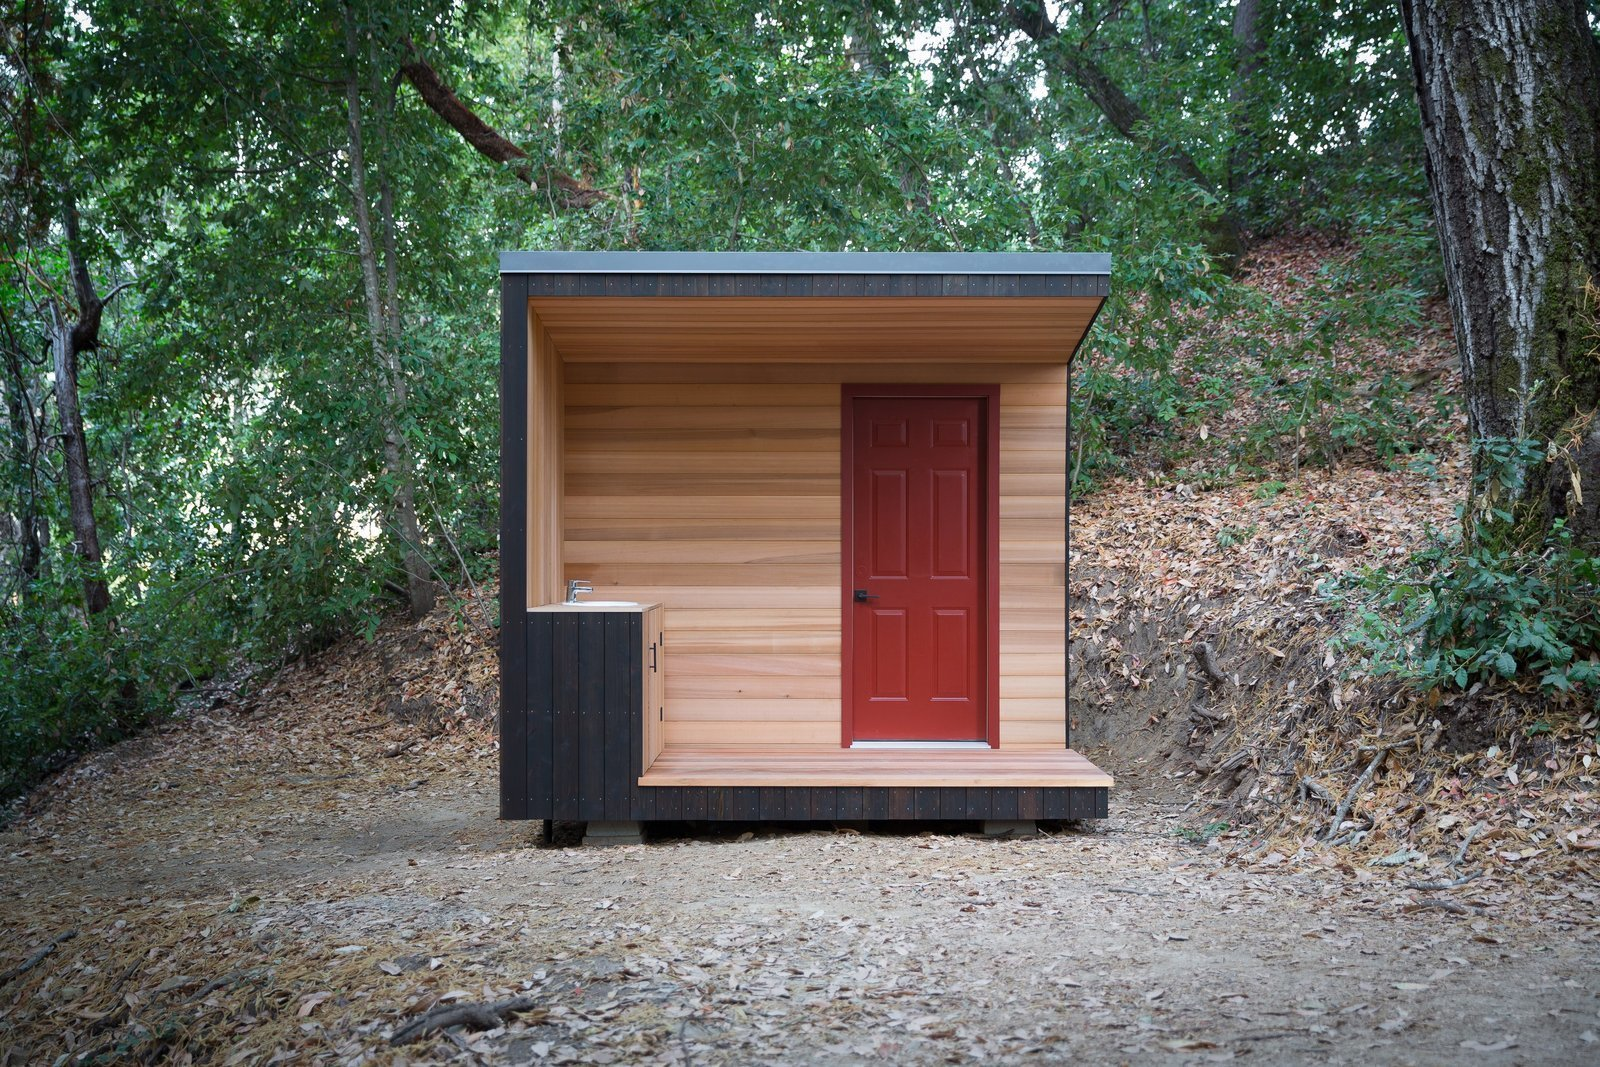 Diy project how to build your own modern outhouse dwell for Build your own modern house